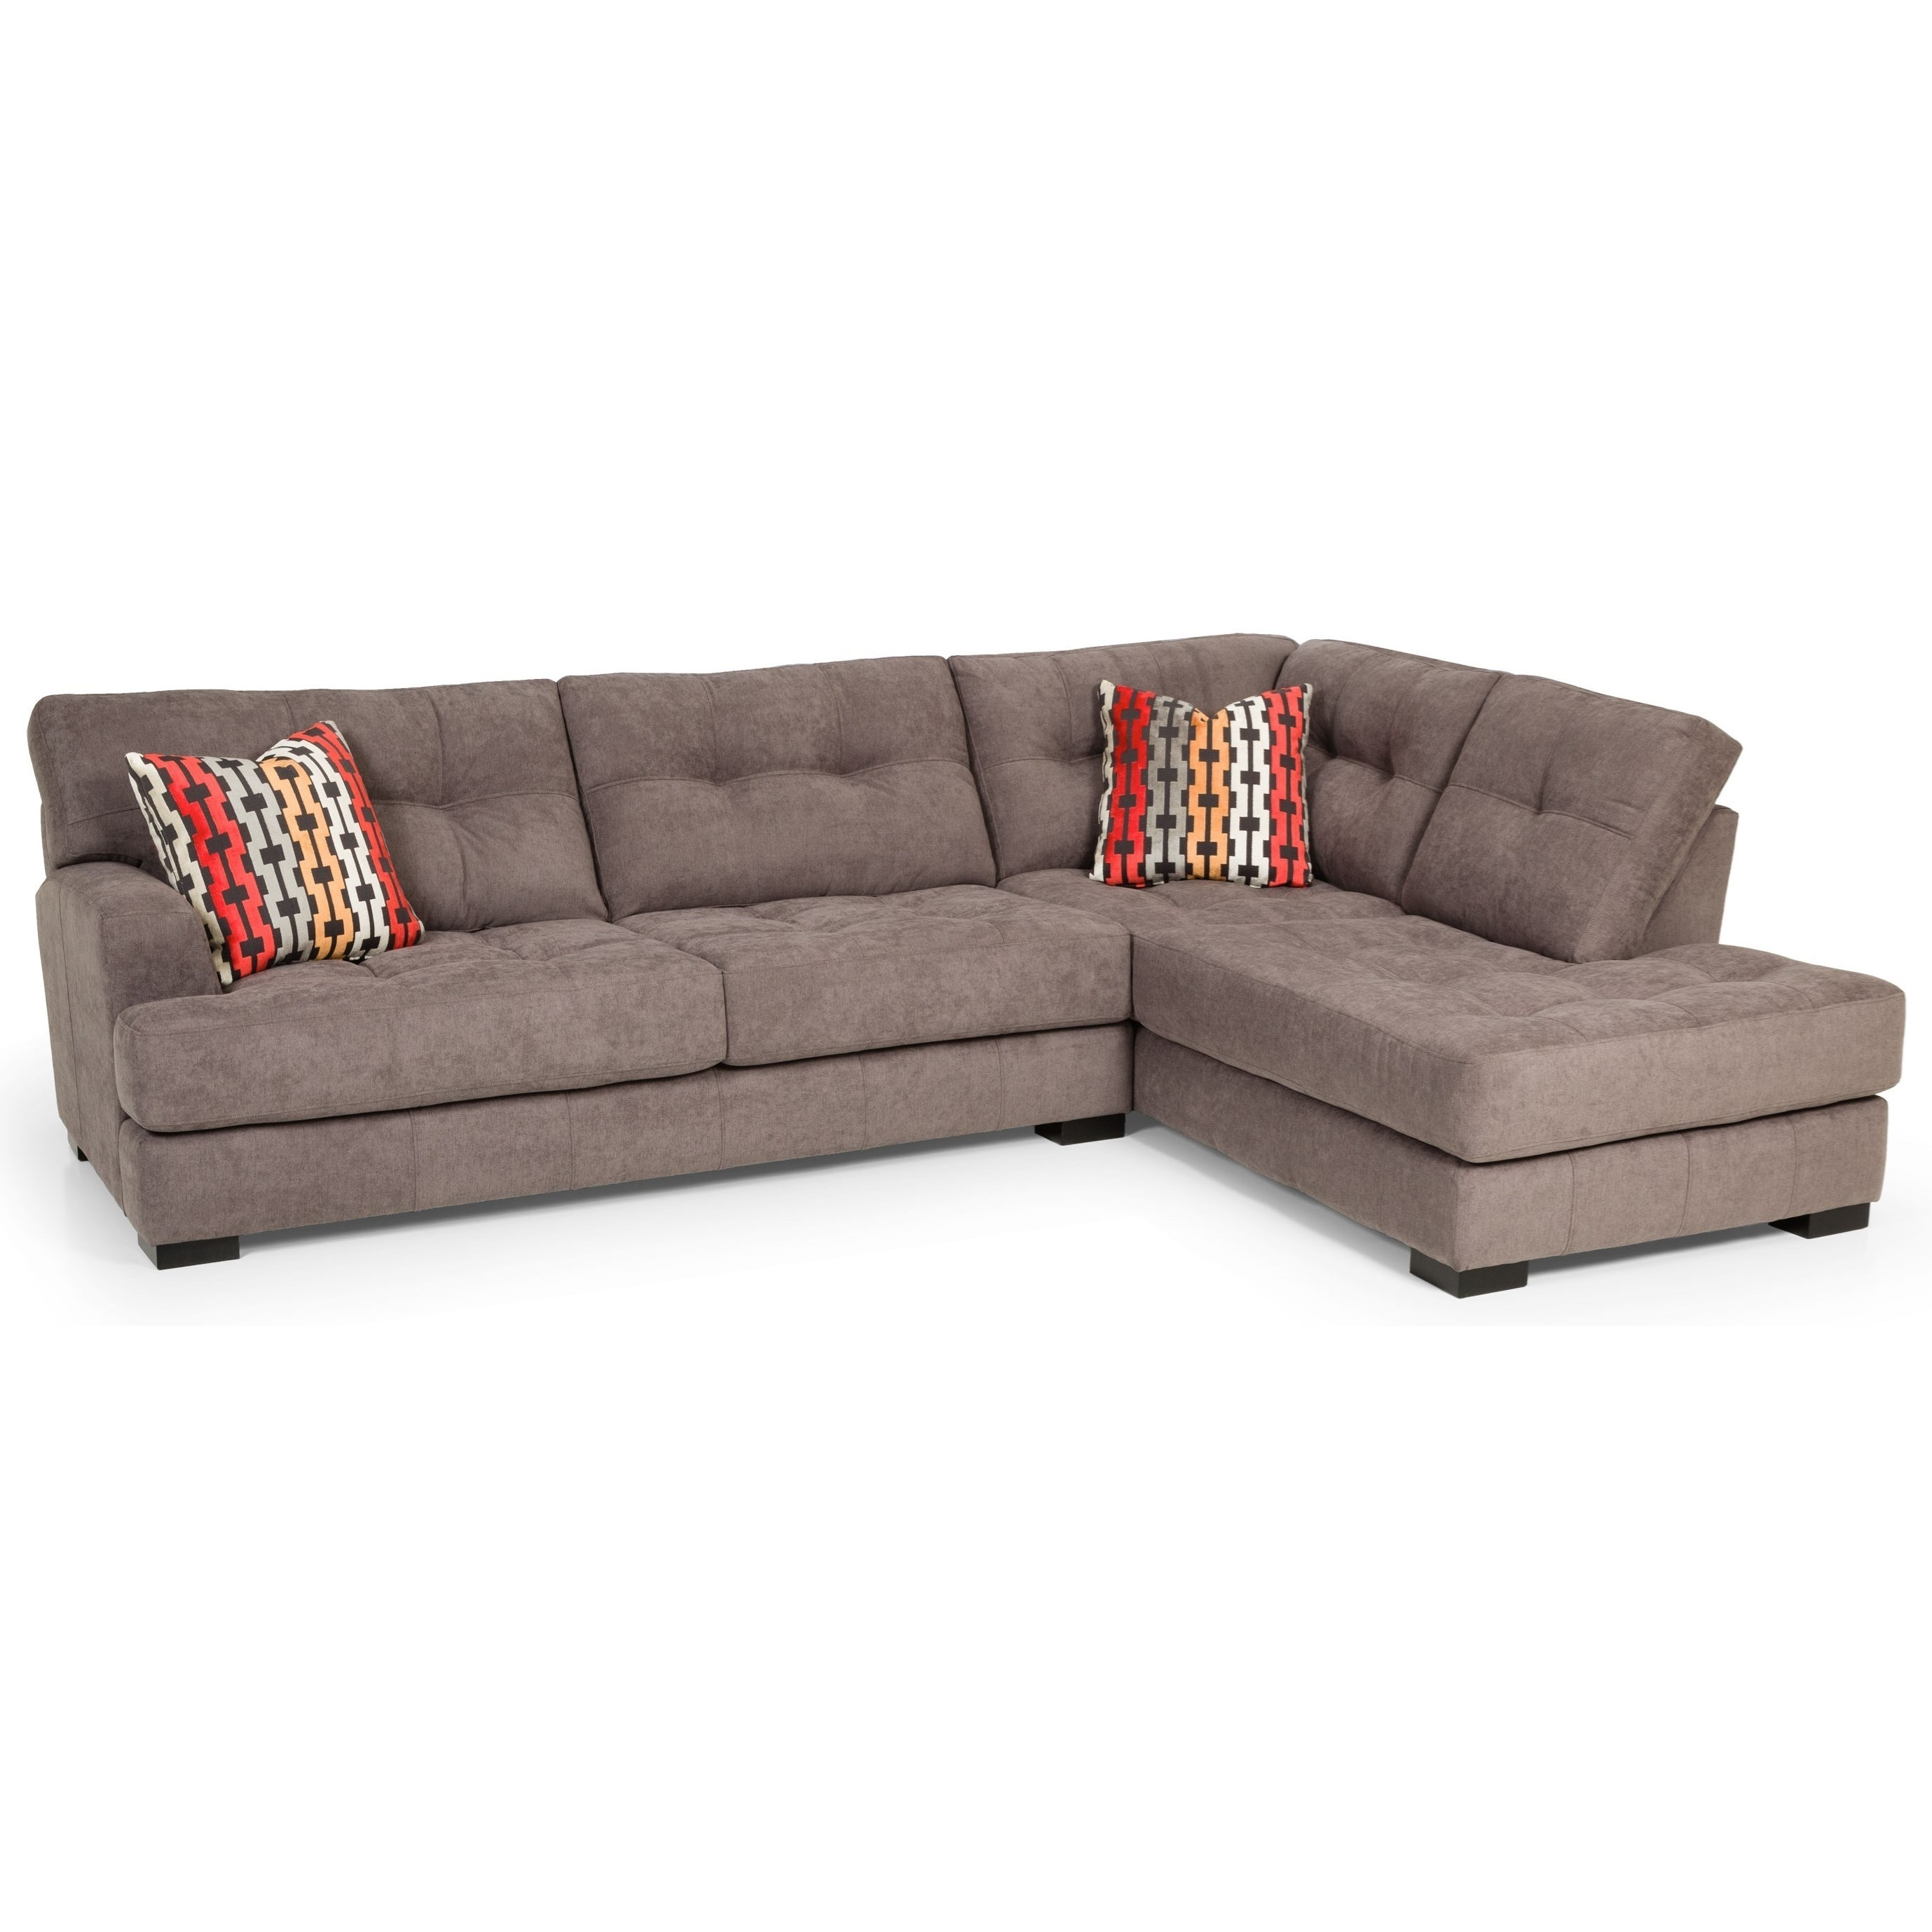 Stanton 308 Casual Two Piece Sectional Sofa | Gallery Furniture Intended For Aurora 2 Piece Sectionals (Image 23 of 25)